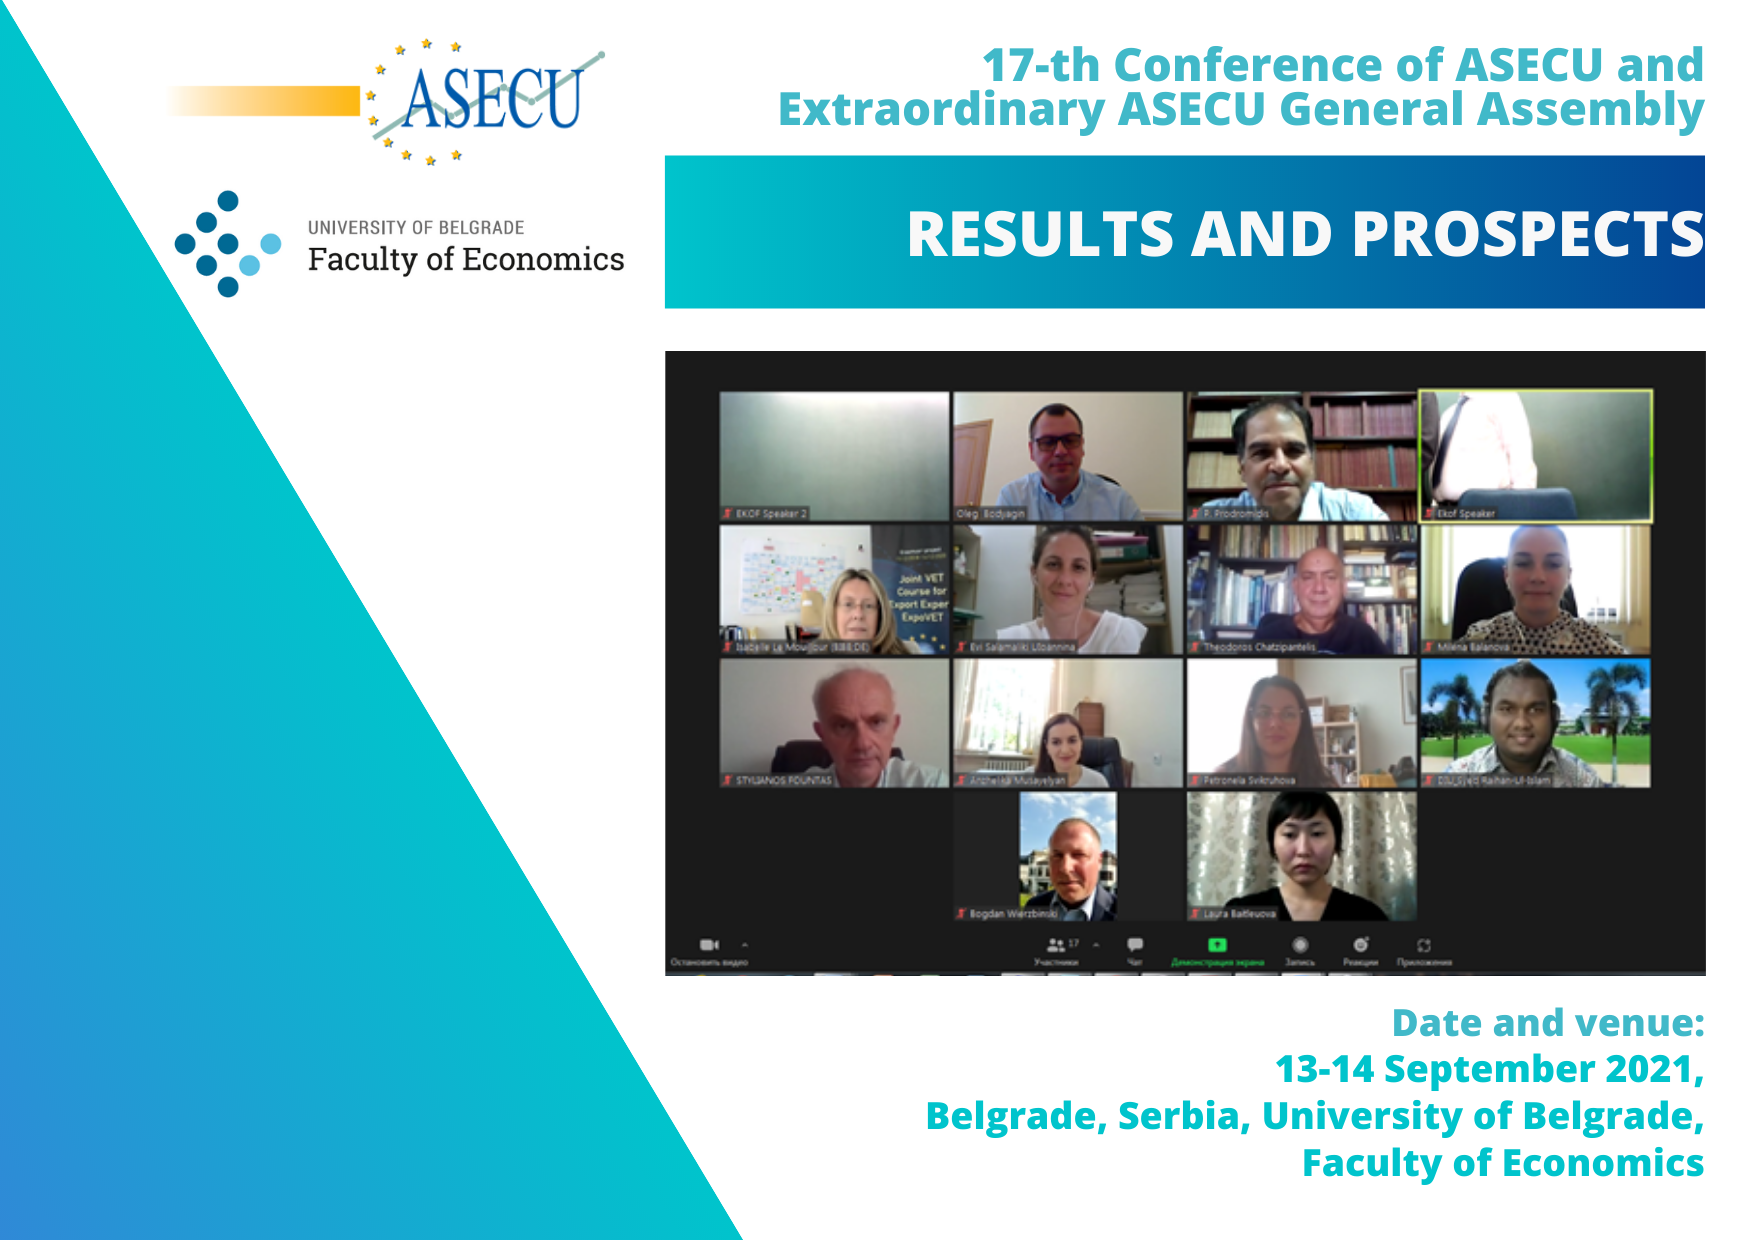 ASECU successfully held the Triple event dedicated to its 25th anniversary